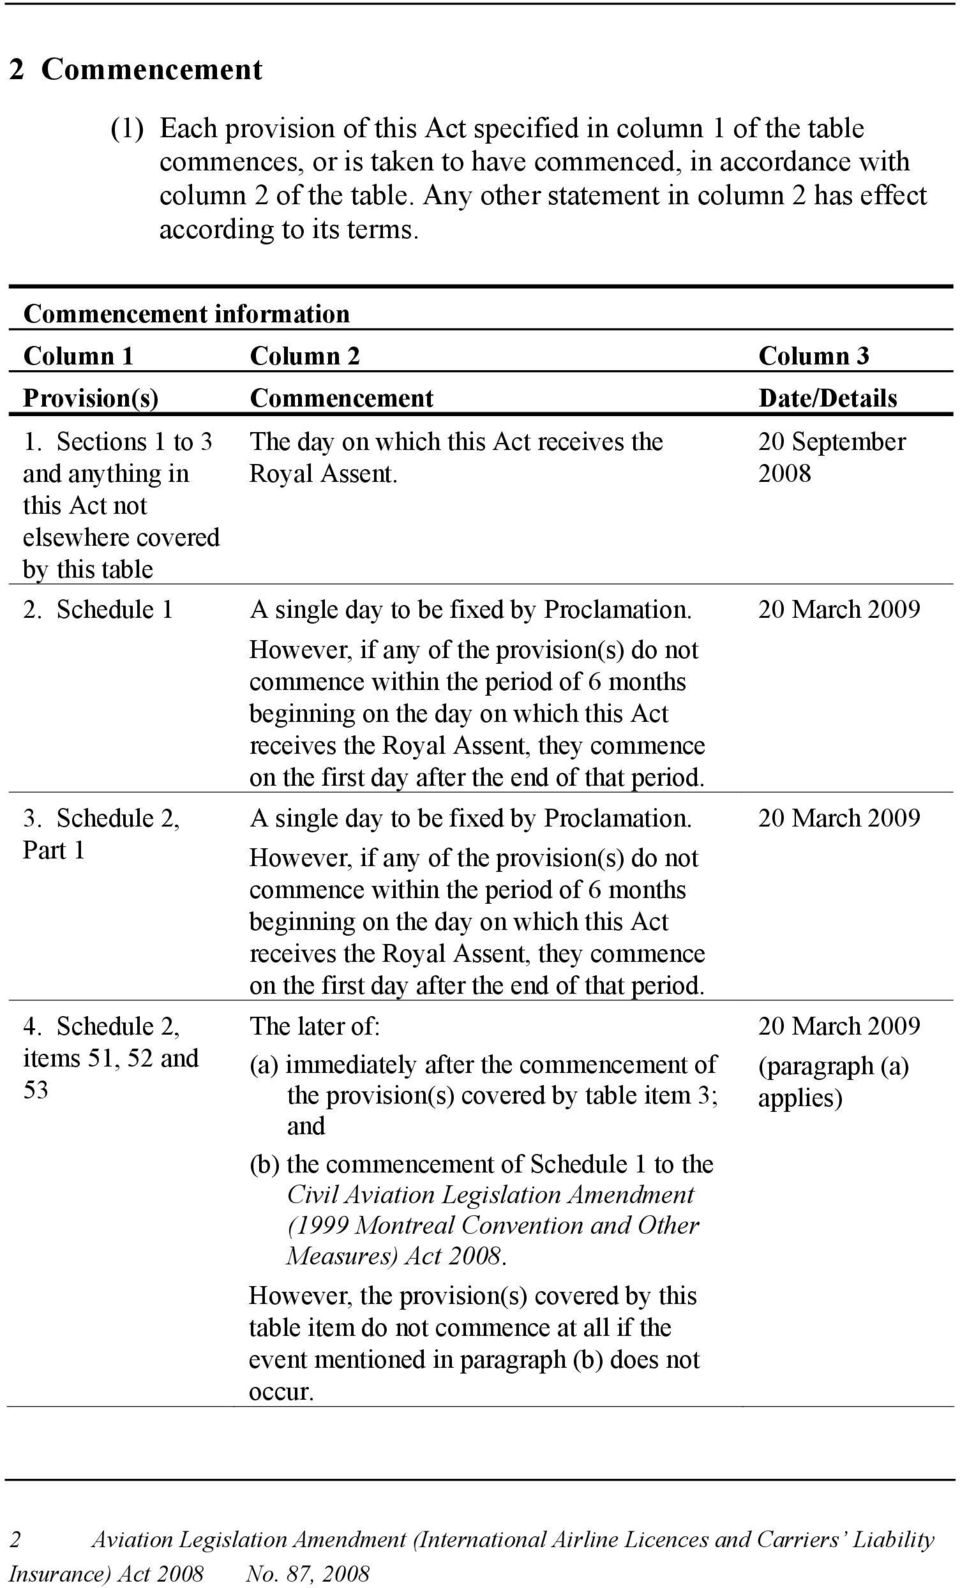 Sections 1 to 3 and anything in this Act not elsewhere covered by this table The day on which this Act receives the Royal Assent. 2. Schedule 1 A single day to be fixed by Proclamation.